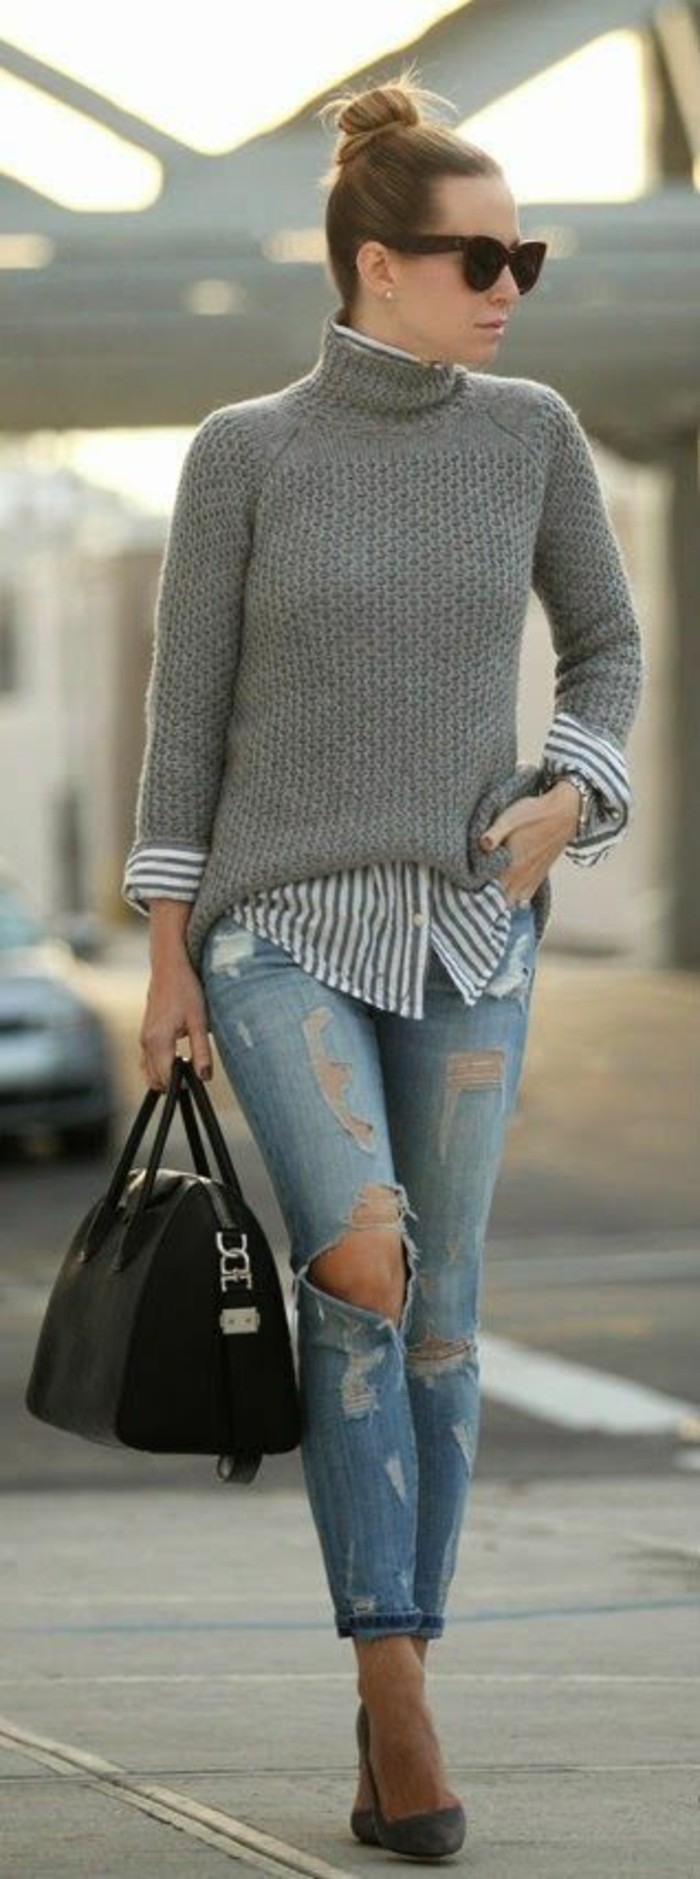 50 pullover sweaters outfit ideas for women - ecstasycoffee